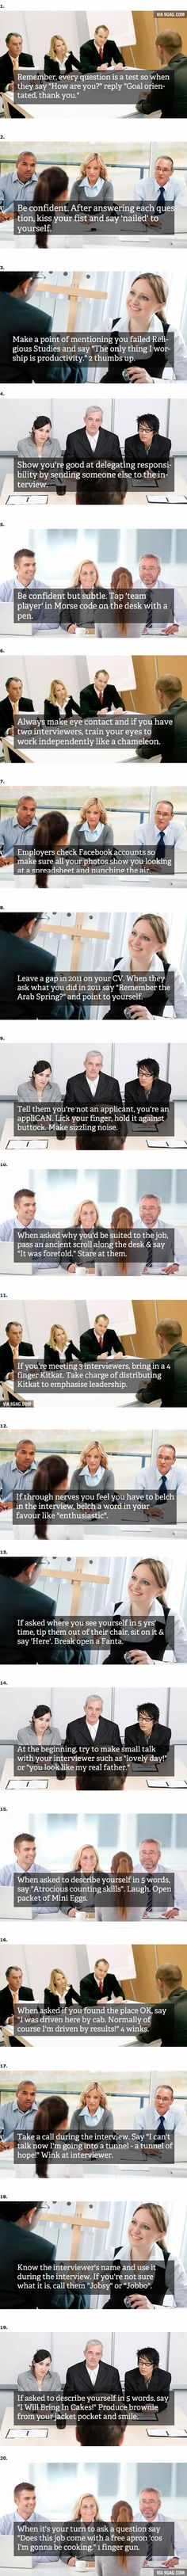 Bahhahahahahhahahaha I'm wondering what kind of face those interviewer would have if I answered them that way